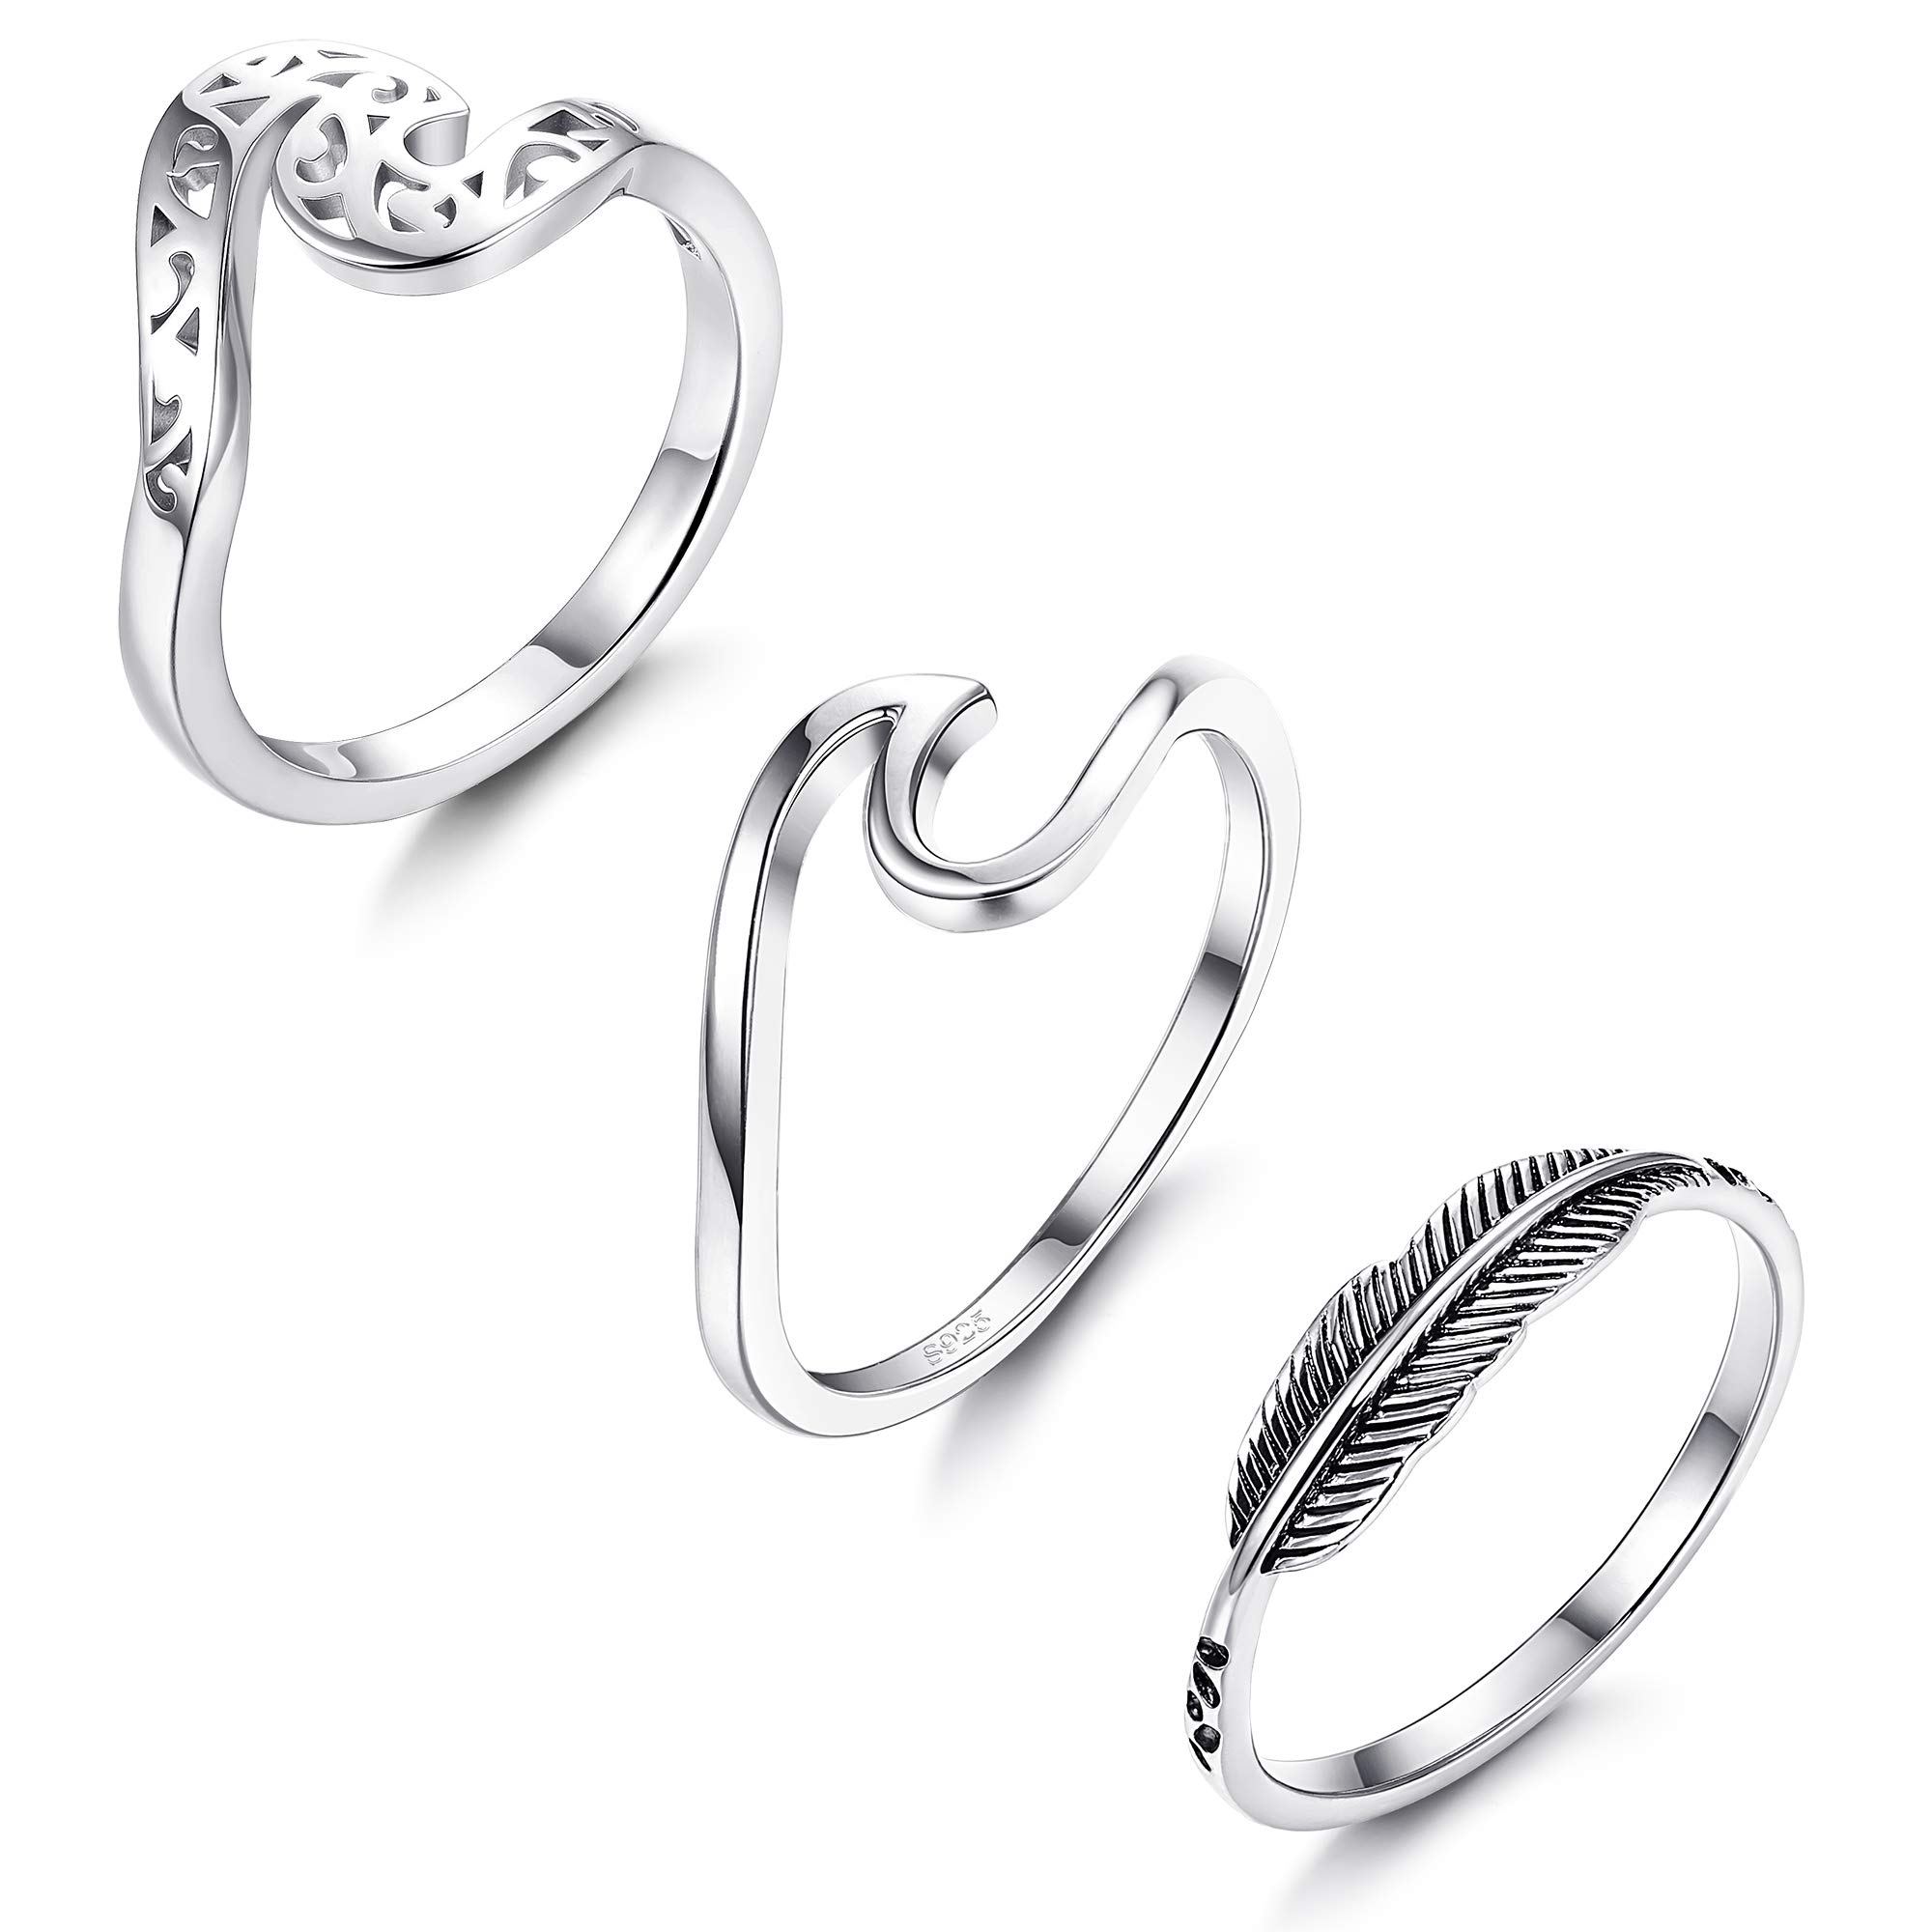 LOYALLOOK 3PCS 925 Sterling Silver Wave Rings for Women Fashion Leaf Feather Ring infinity Band Rings Ocean Wave Thumb Rings, 5-10